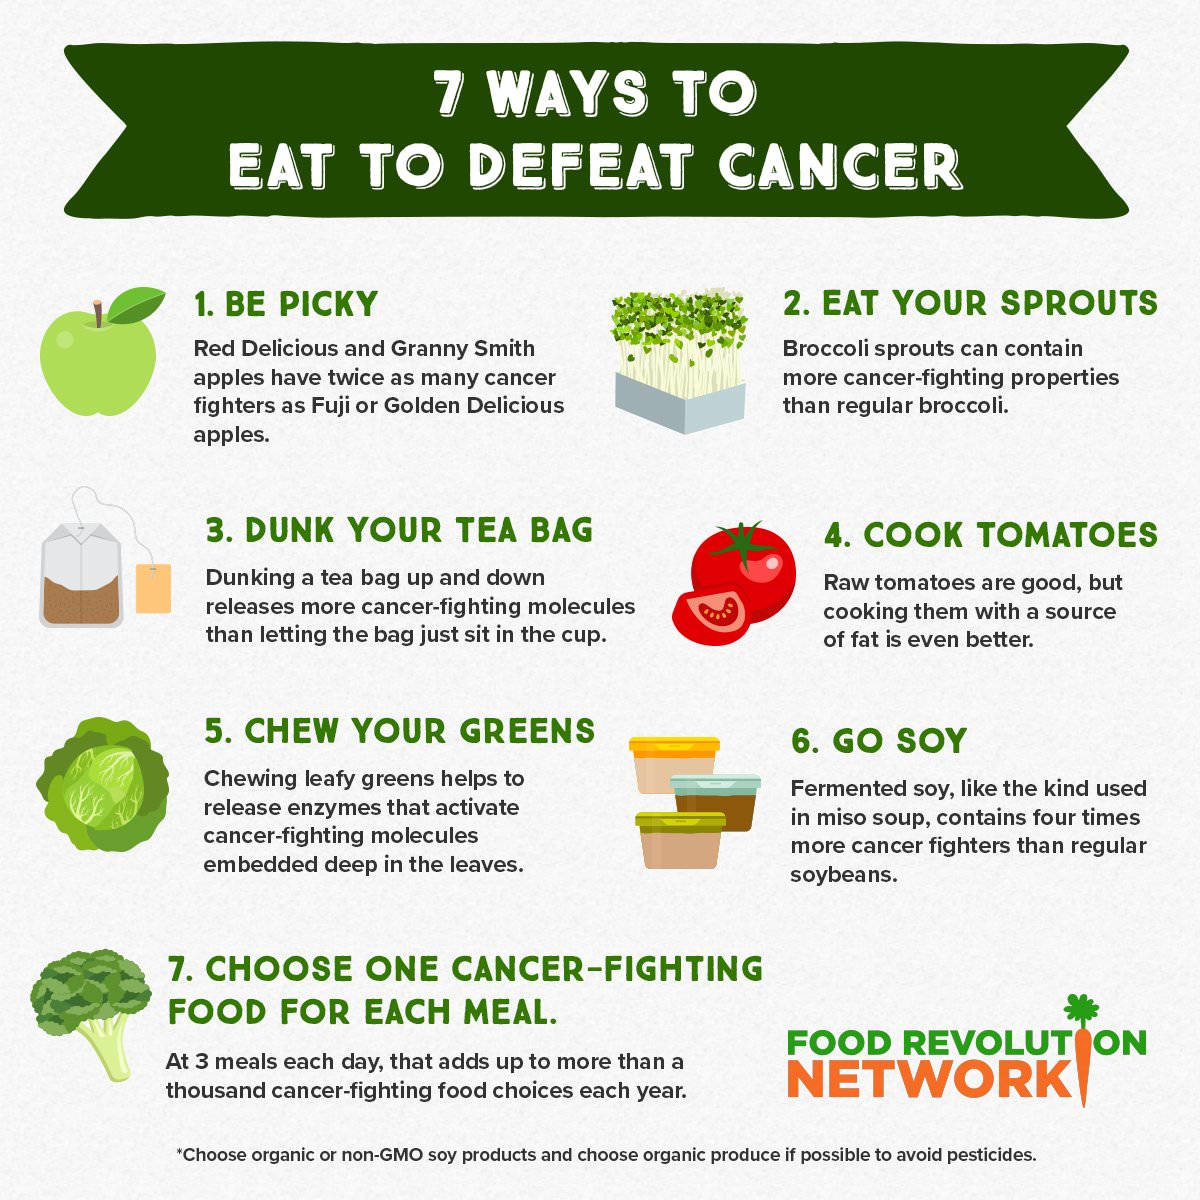 Eat to Defeat Cancer infographic from Food Revolution Network